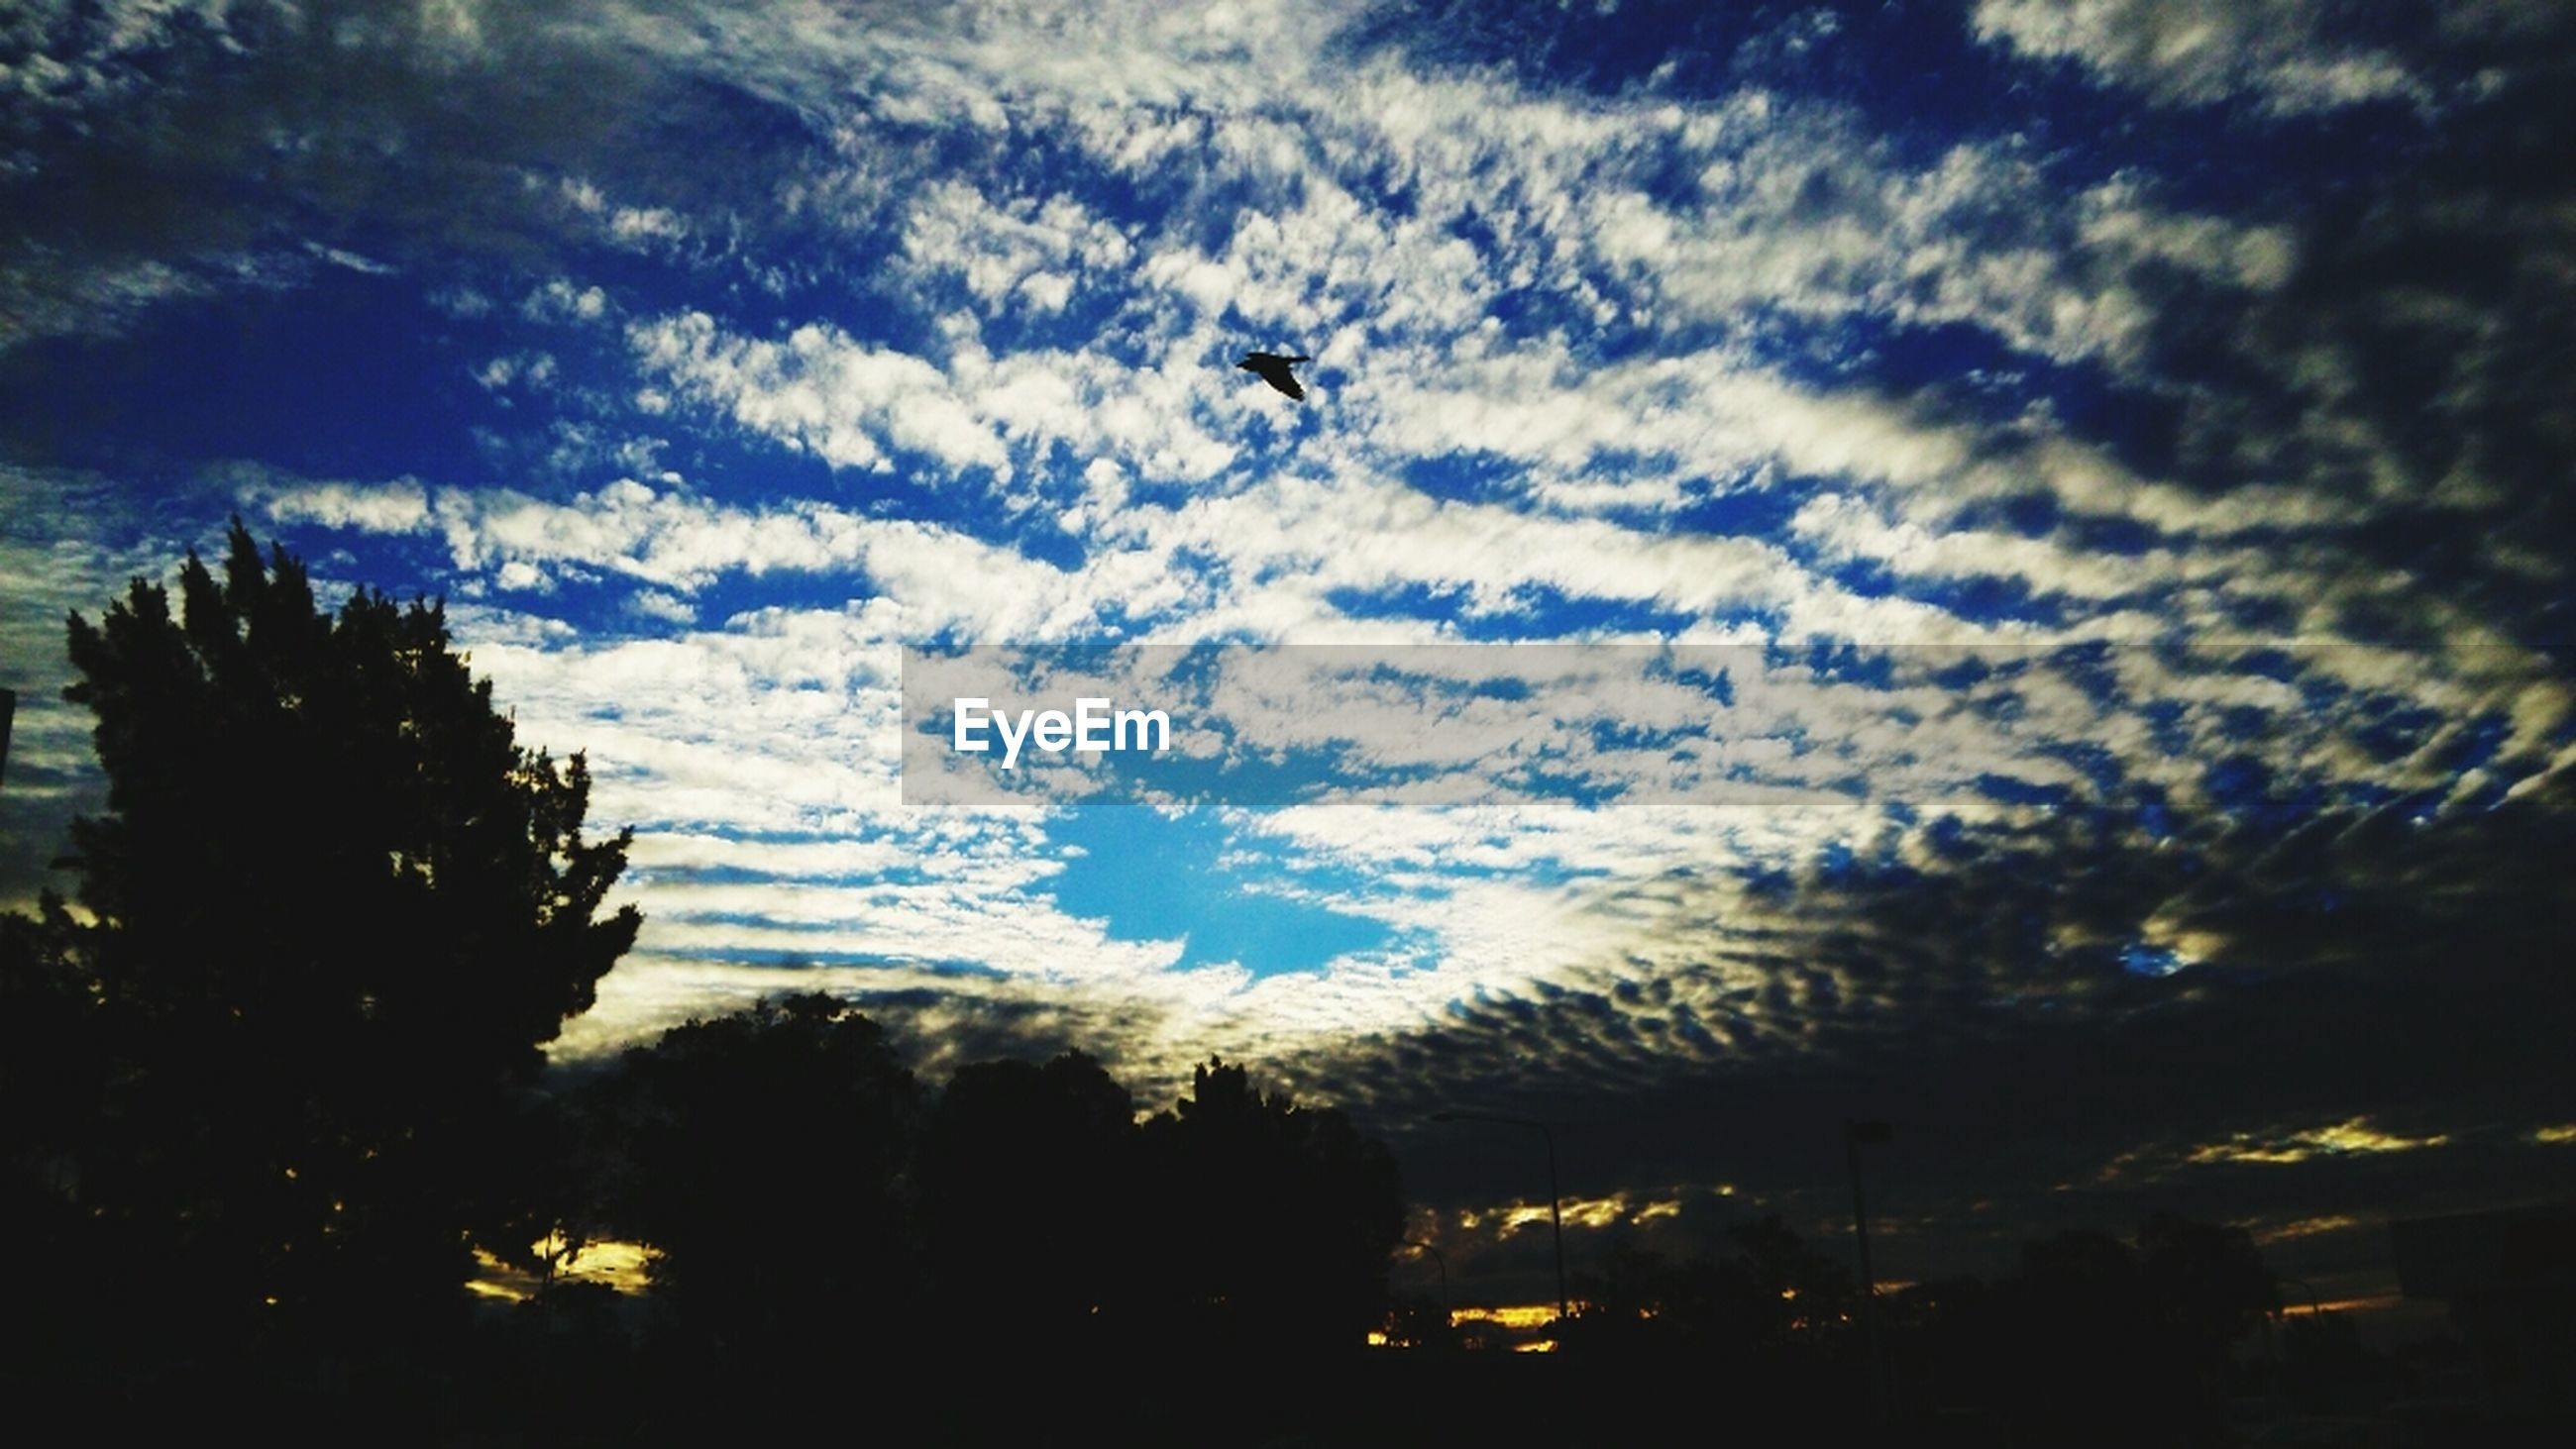 silhouette, sky, tree, cloud - sky, low angle view, cloudy, dusk, beauty in nature, nature, tranquility, scenics, cloud, sunset, tranquil scene, growth, weather, outdoors, dramatic sky, no people, overcast